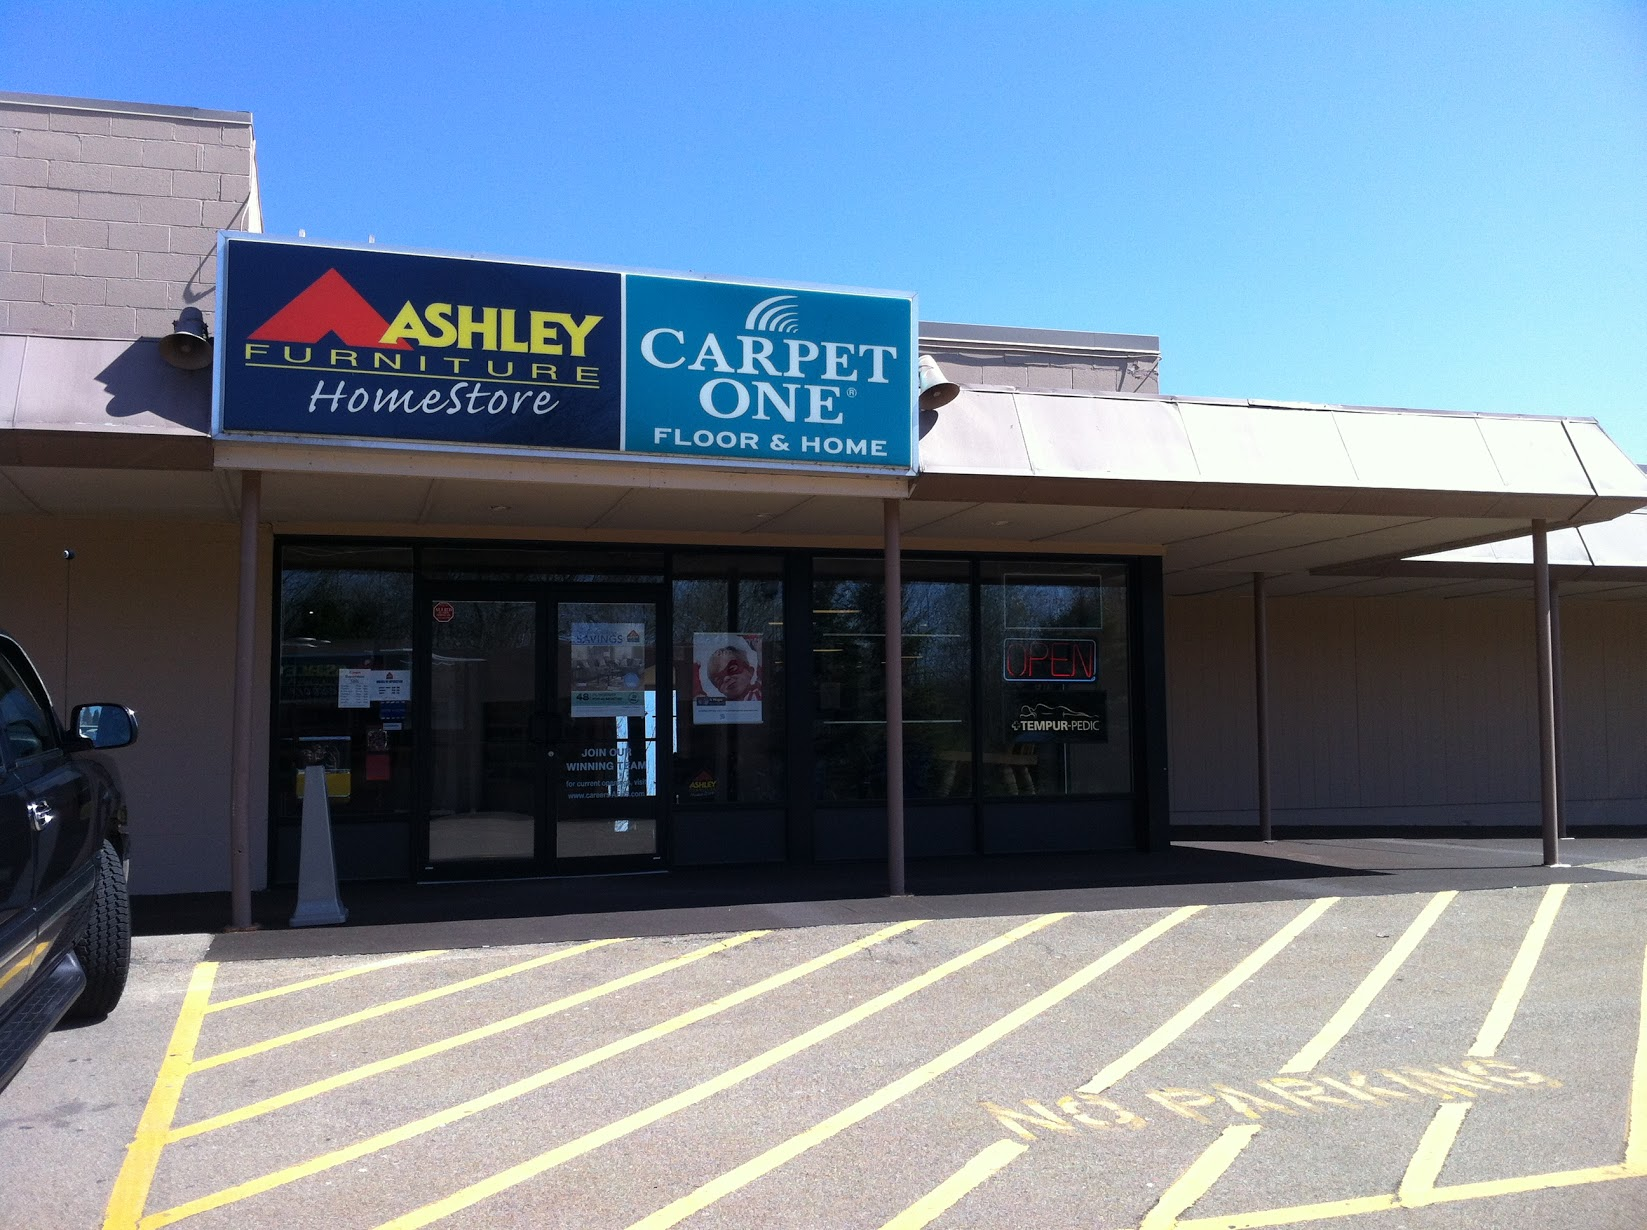 Olean Ashley Furniture HomeStore New York Ohio Pennsylvania